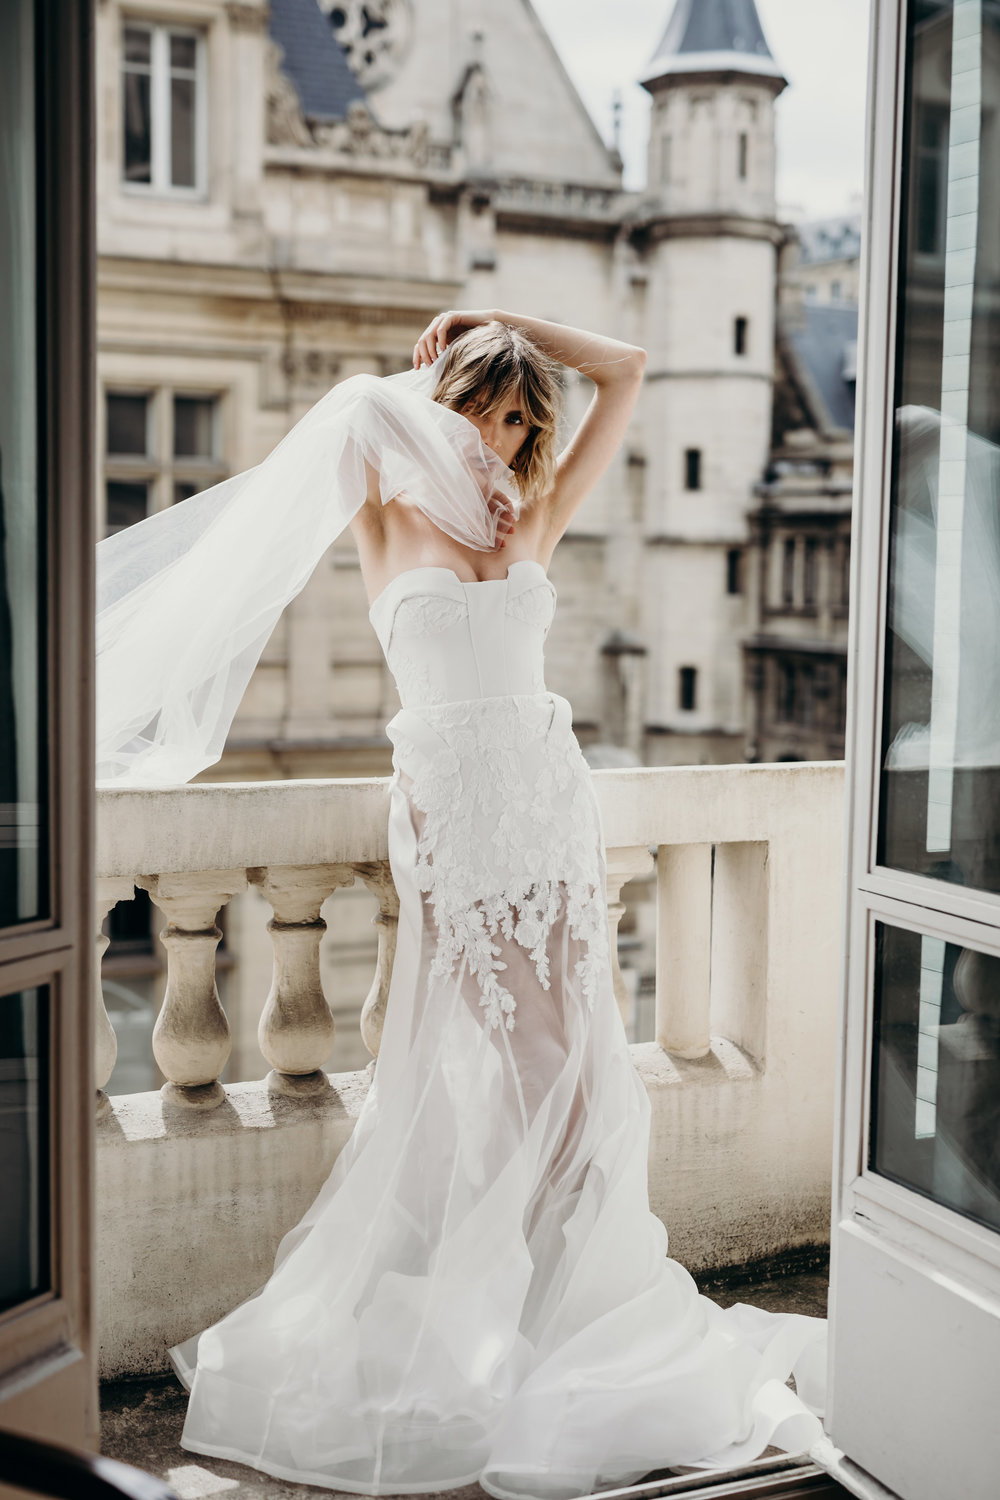 georgia-young-couture-bride-wedding-dressilookbook-paris-ritual-bride-12